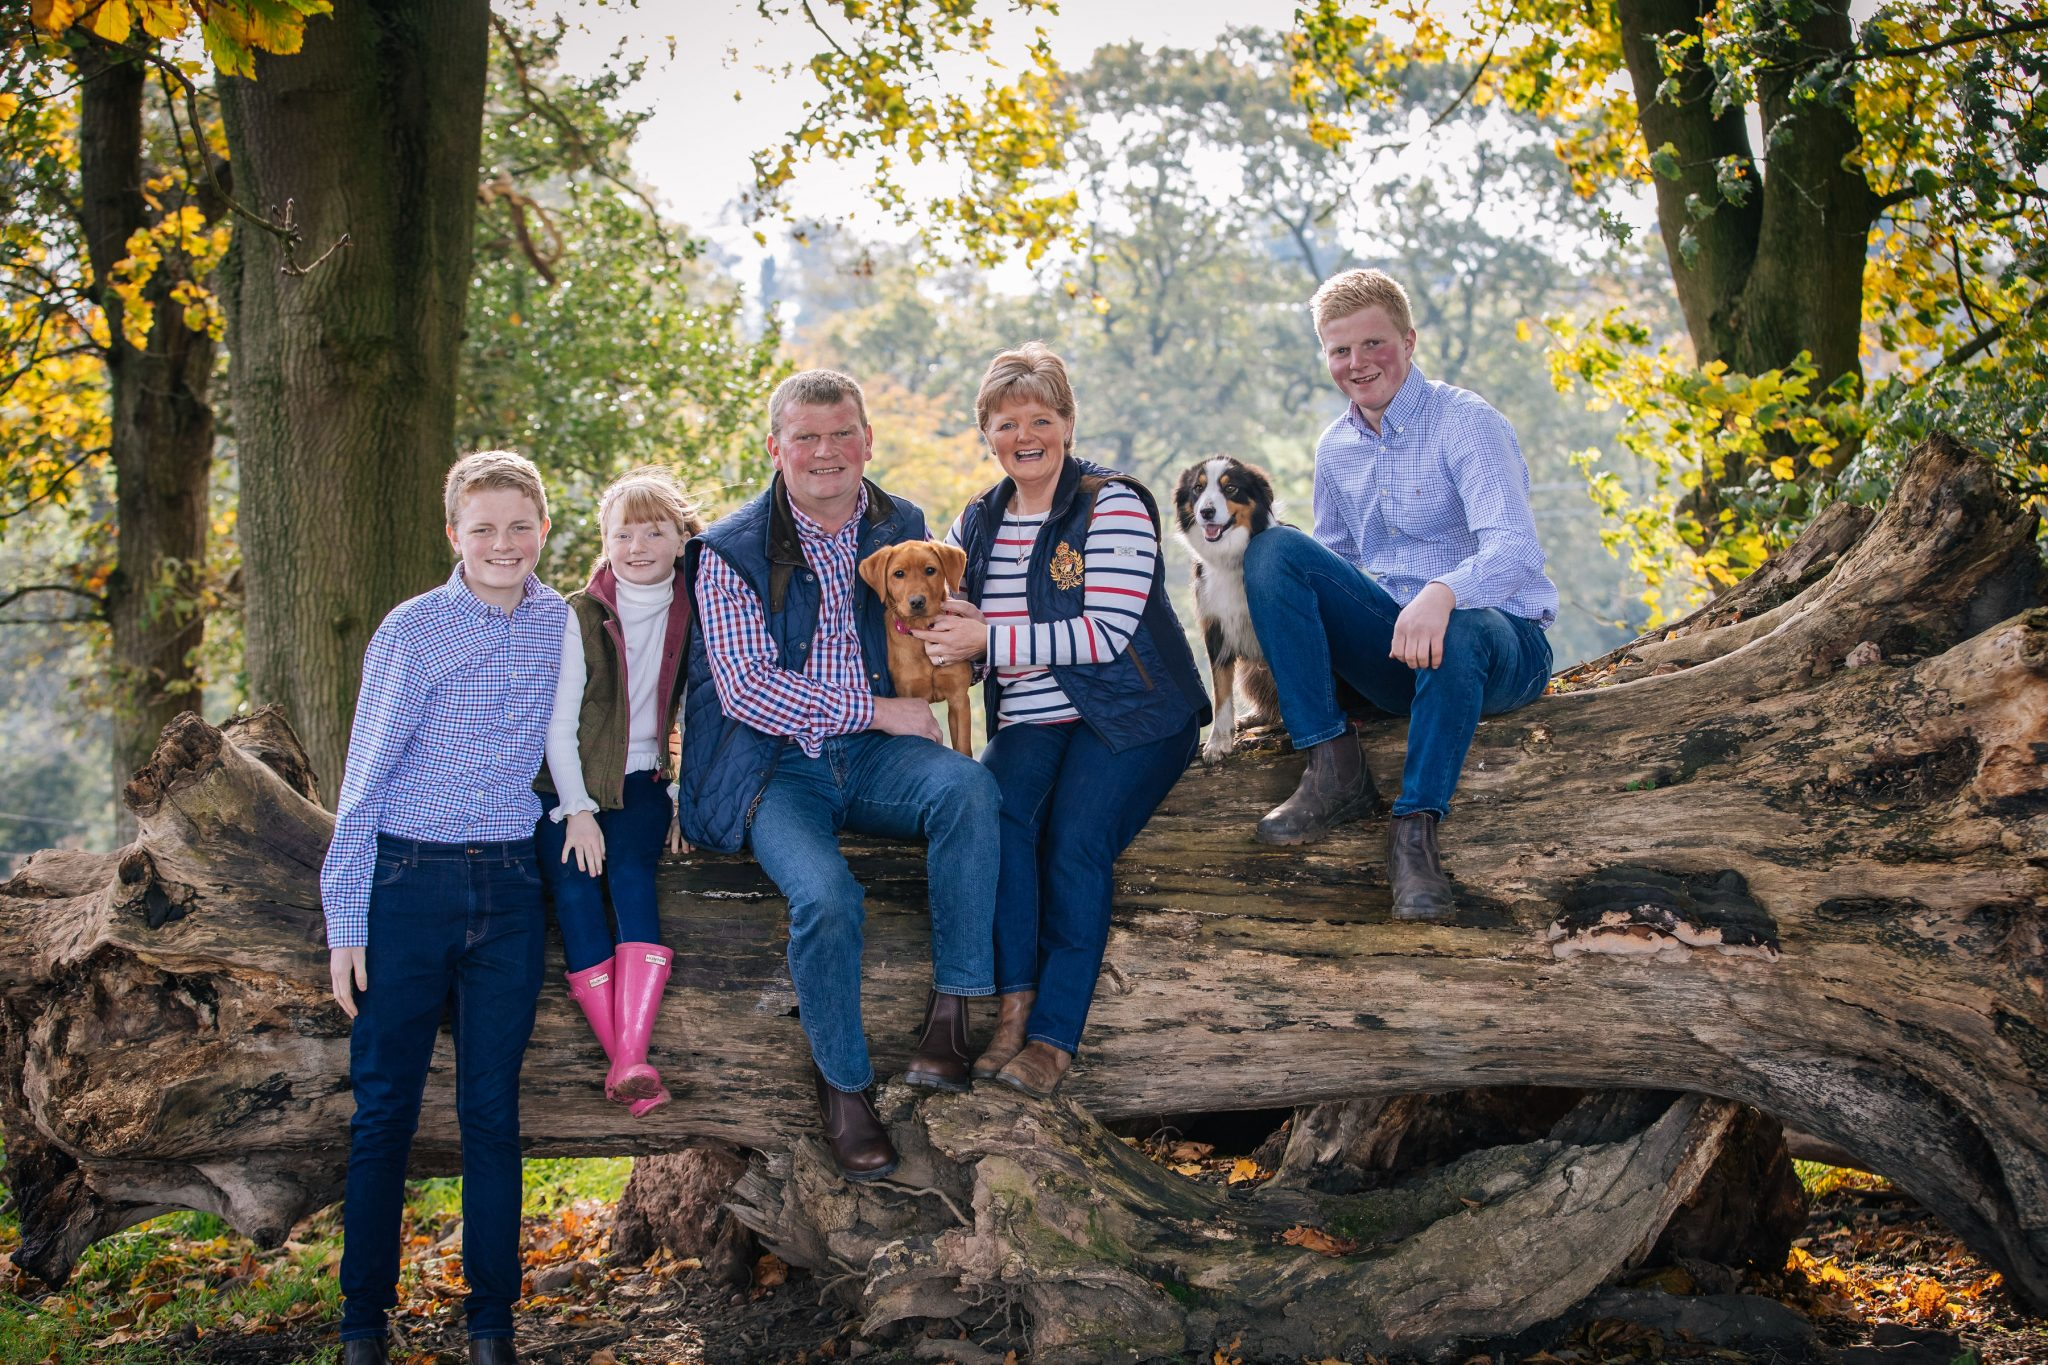 Forest family photoshoot Joanna Eardley photography